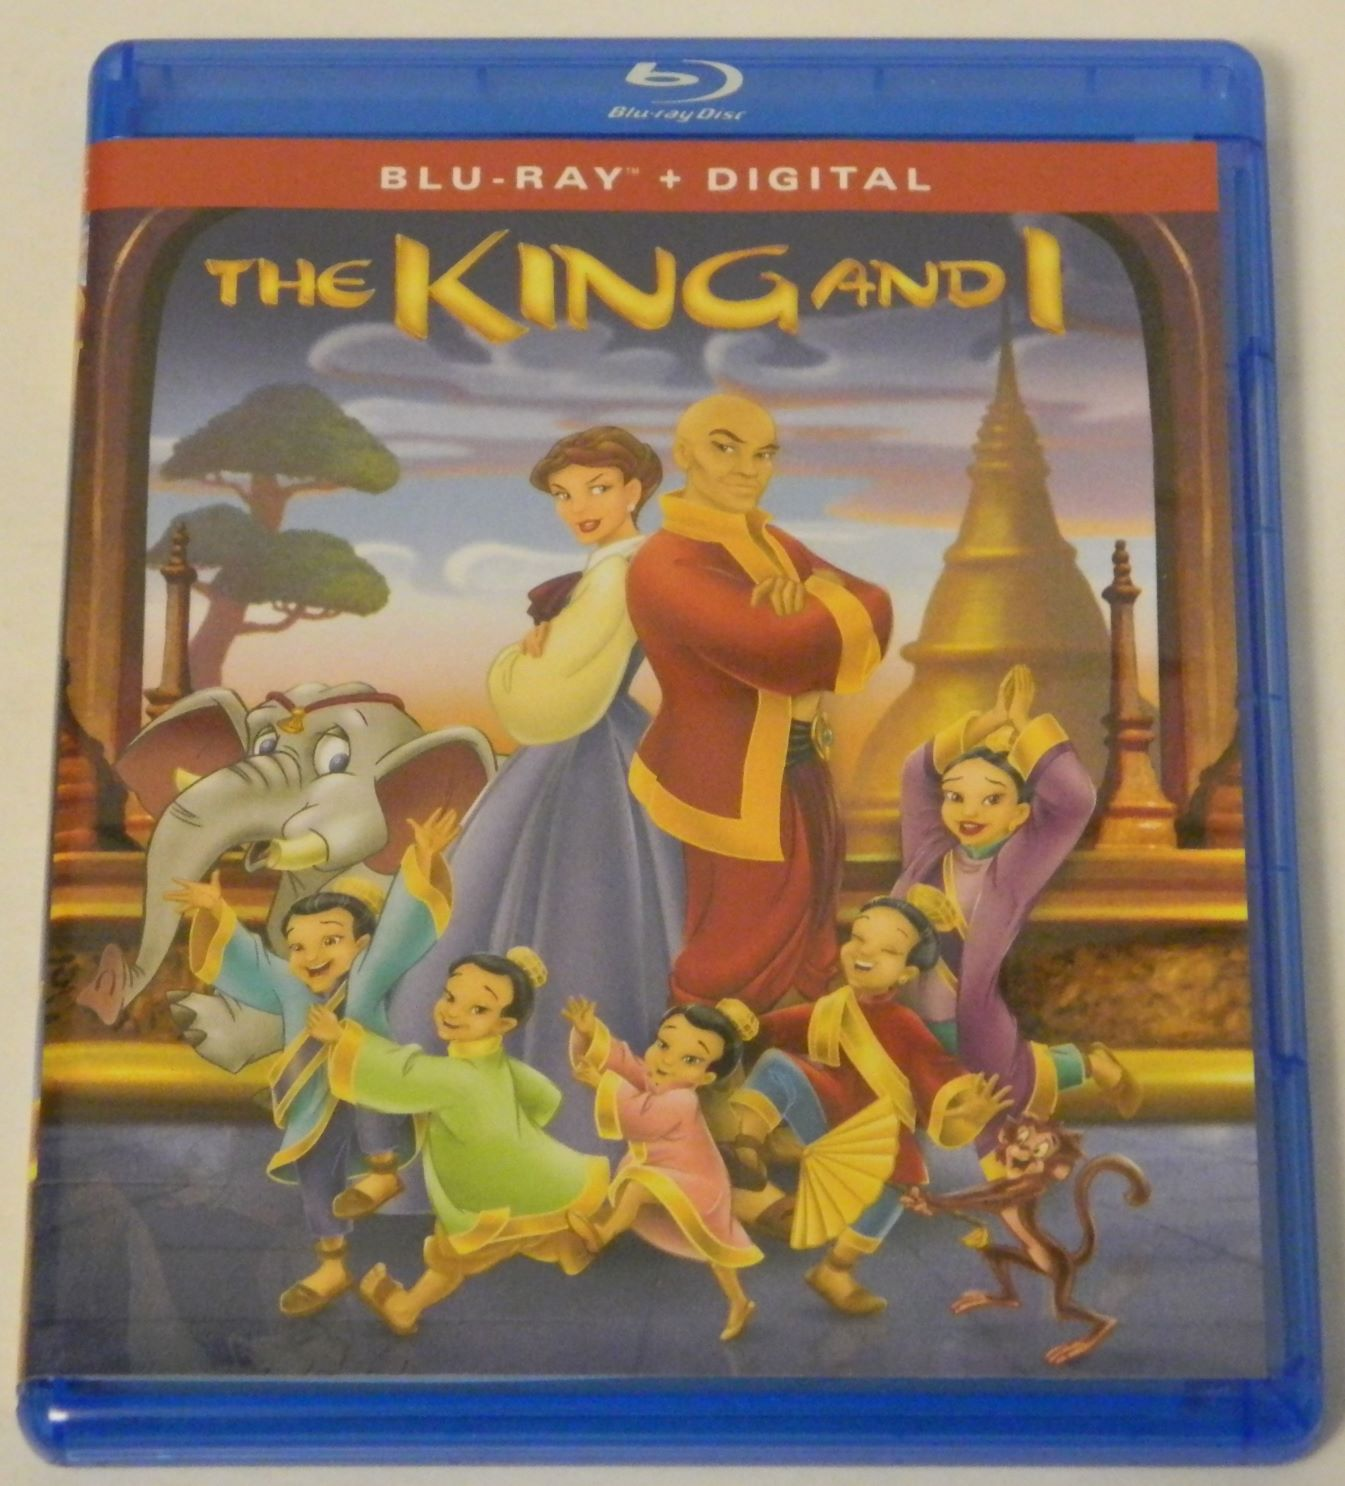 Blu-ray for The King and I